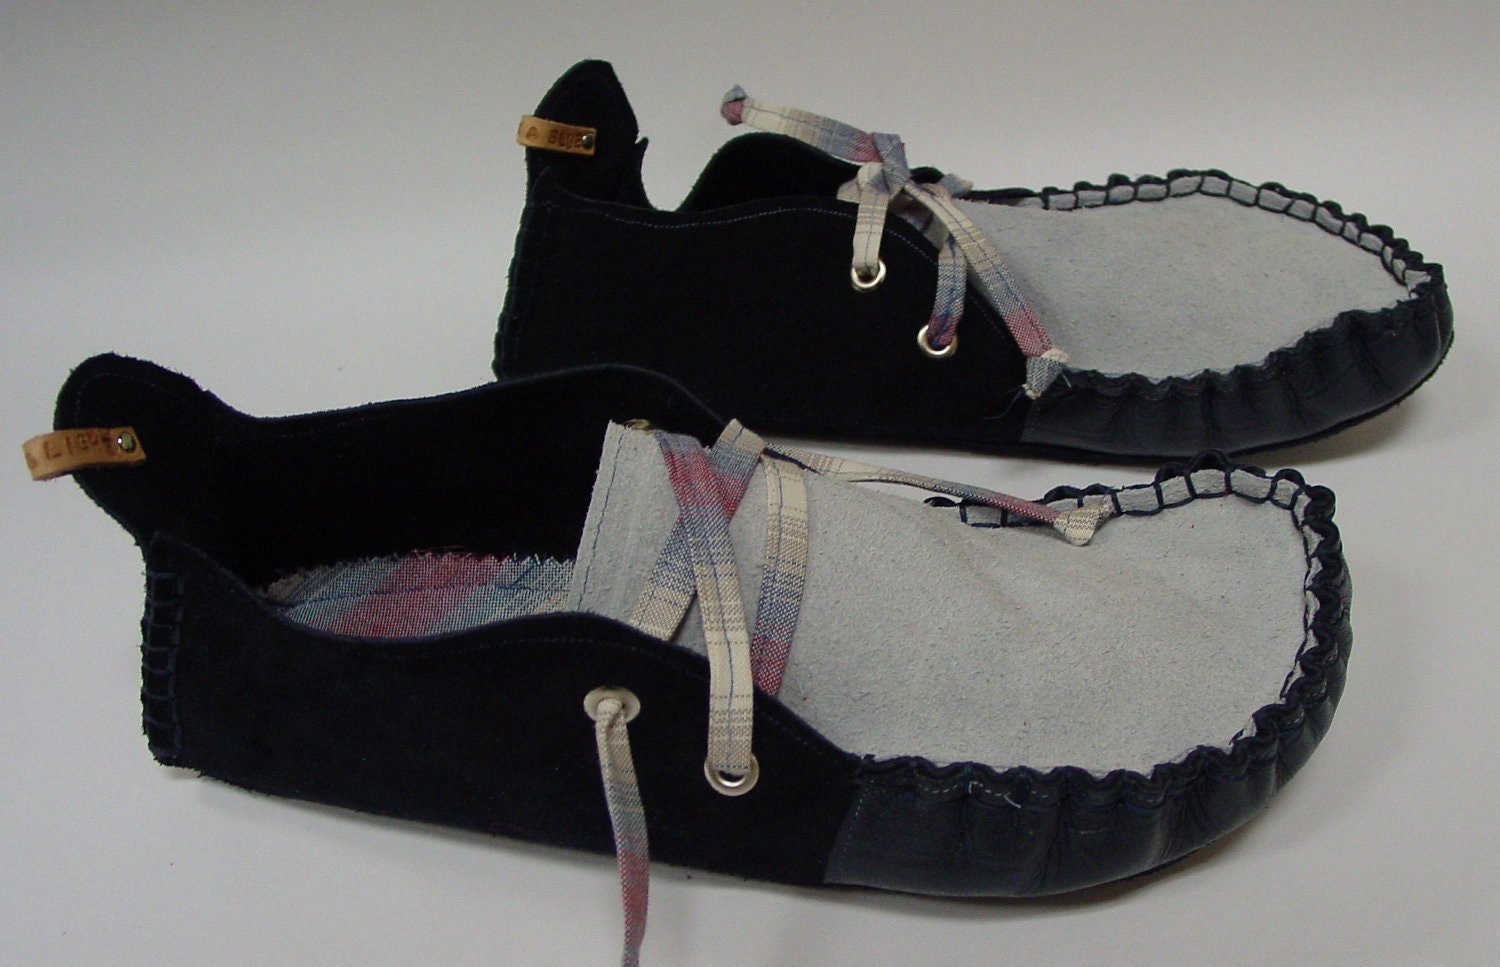 23 Tribes hand made moccasins. Blue Suede Shoes